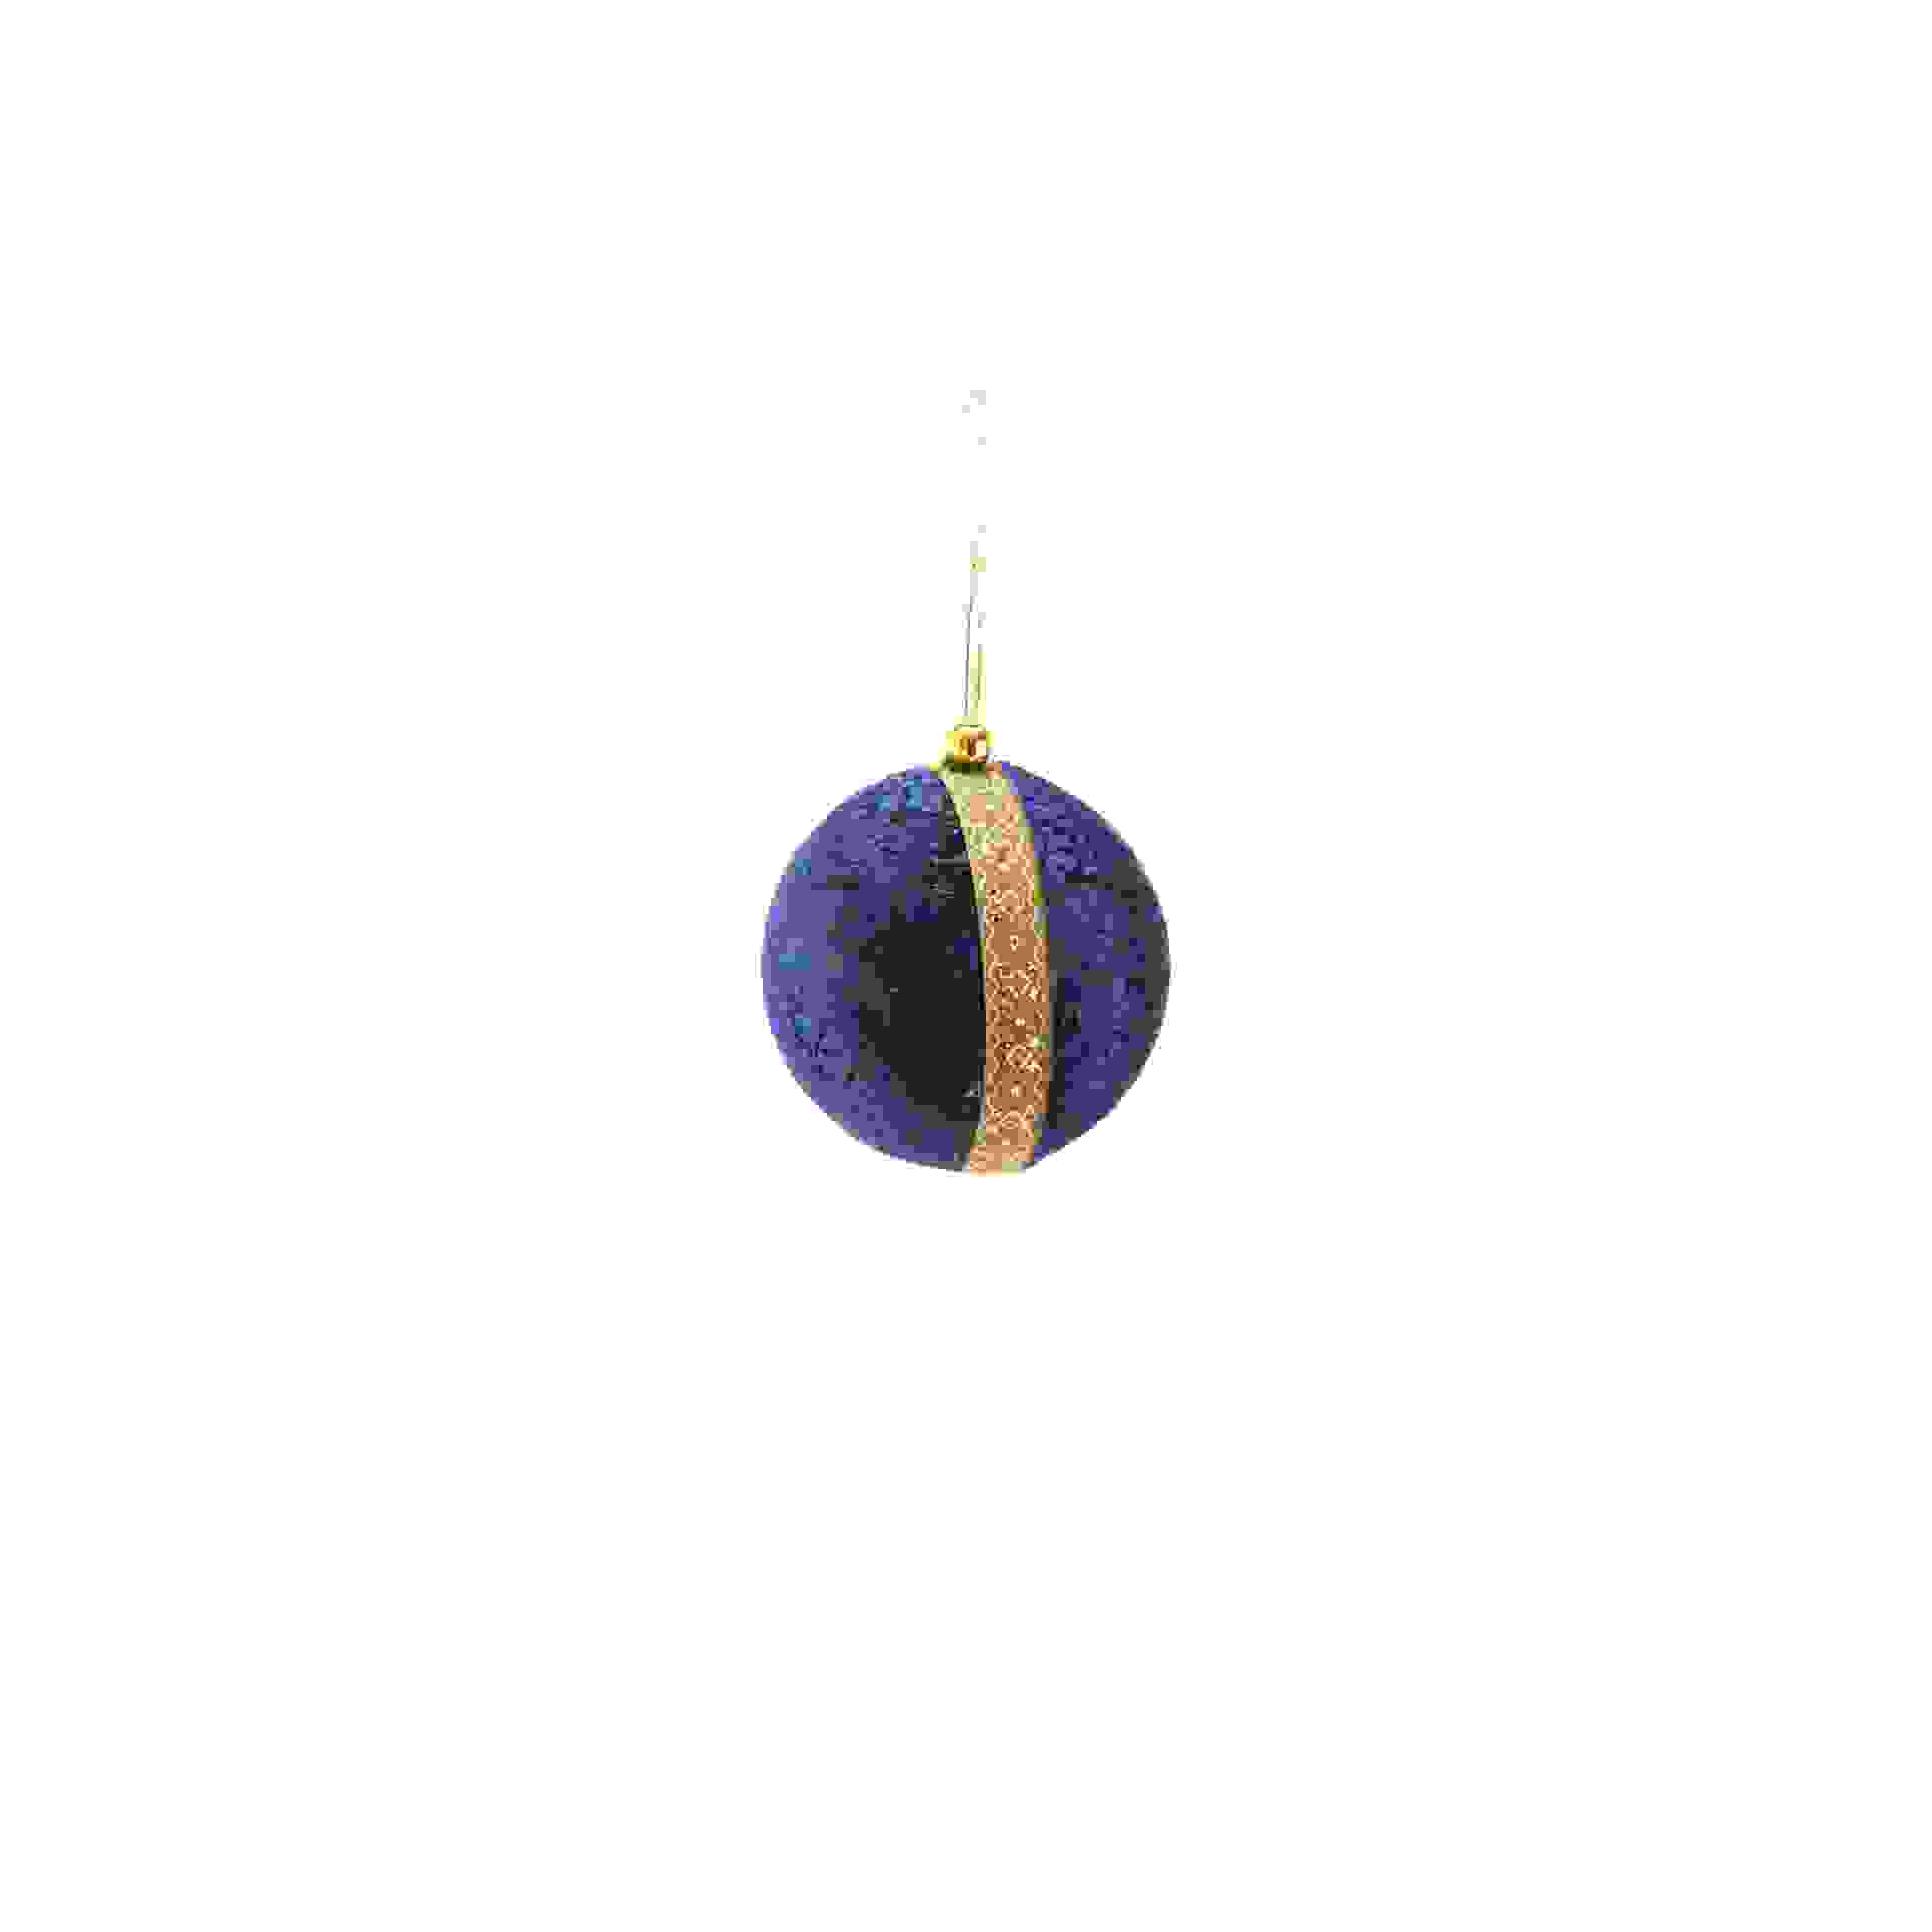 HANG. FEATHER LED BAUBLE